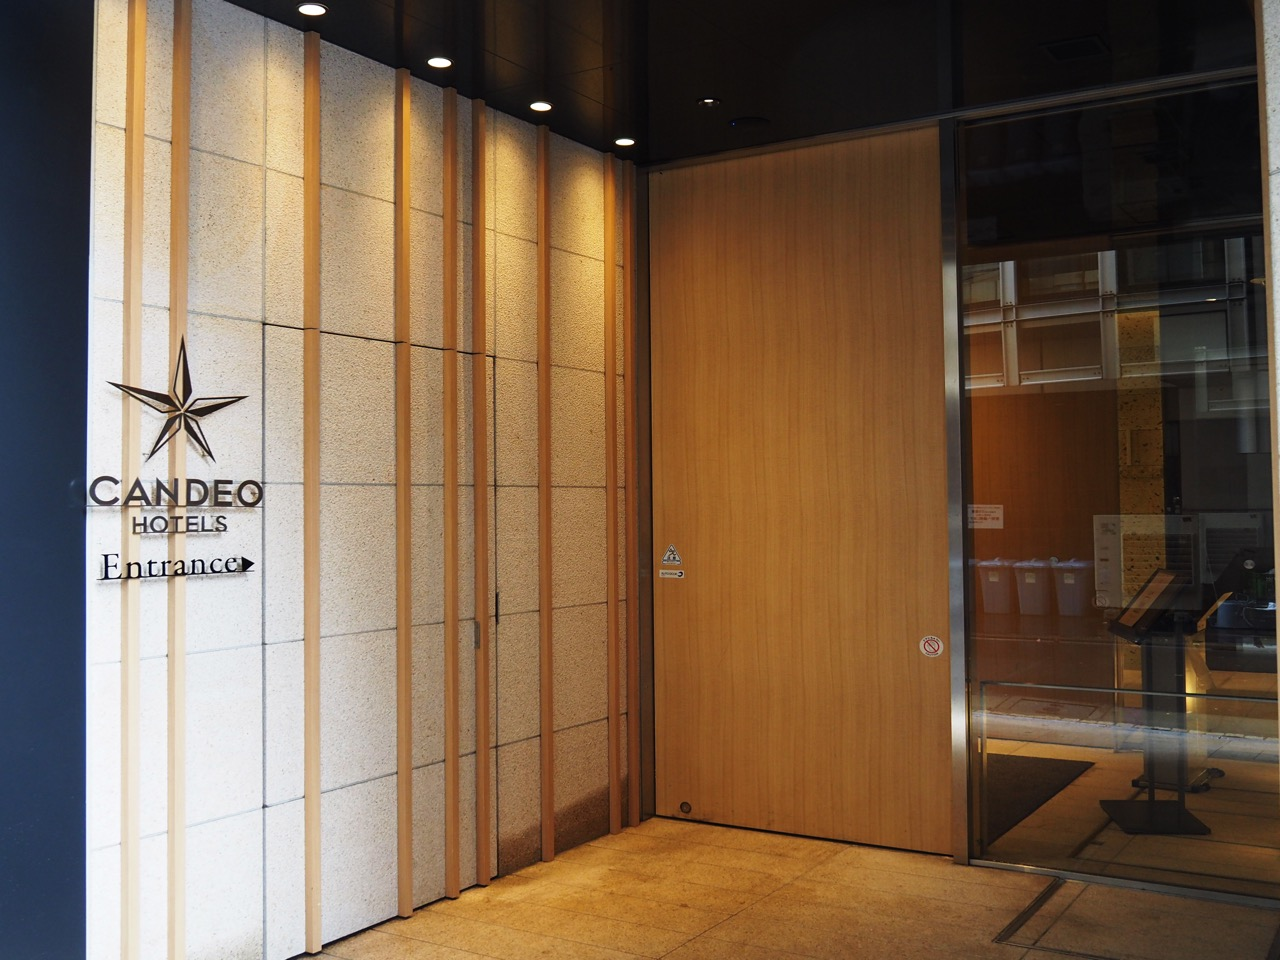 Candeo Hotels